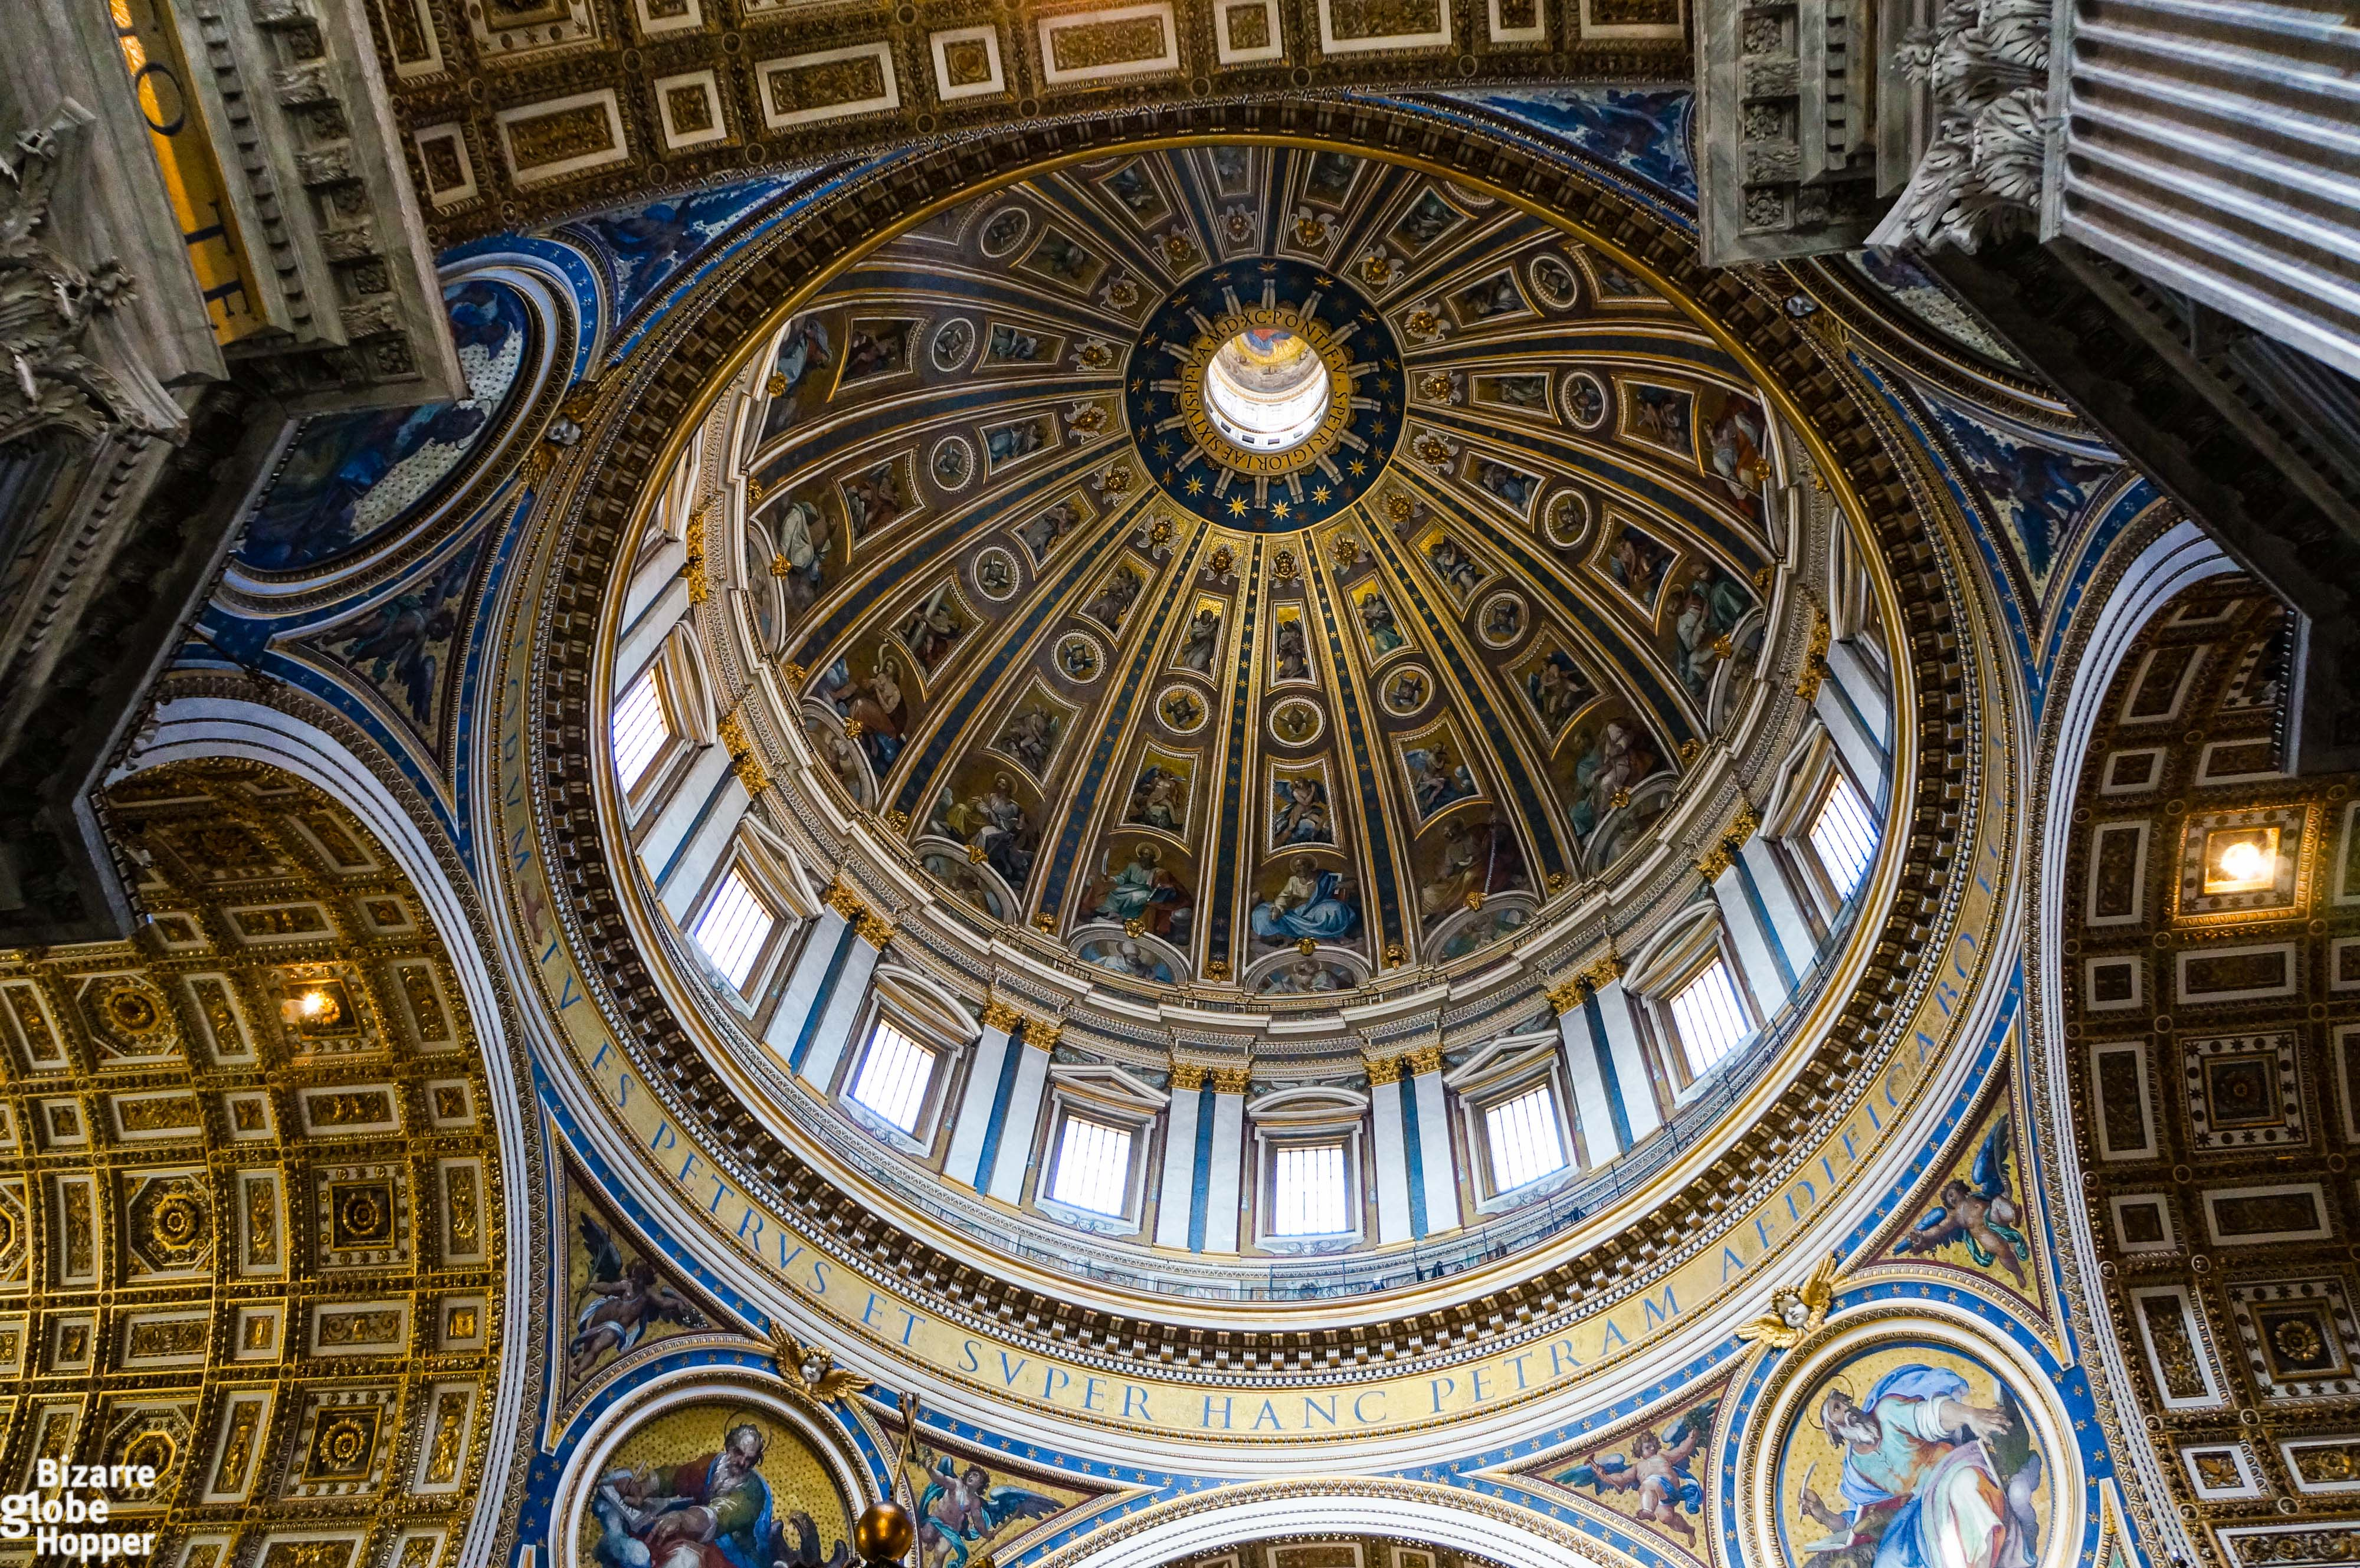 Hunting The Art Treasures And Ghosts Of Vatican Bizarre